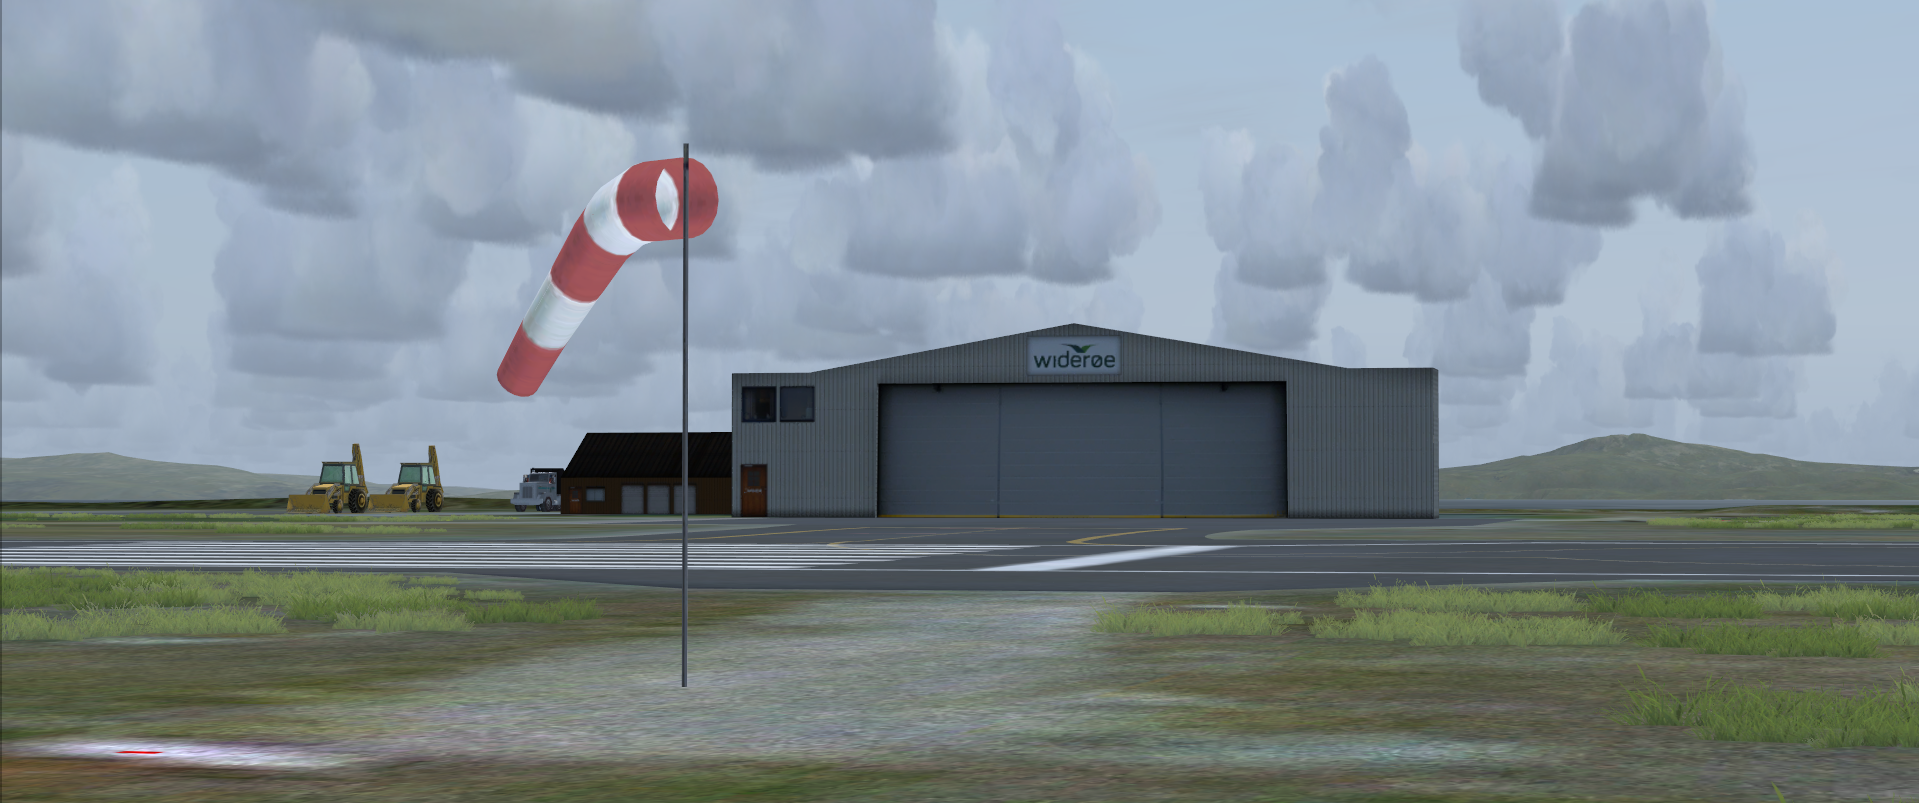 IRONSIM - VADSO AIRPORT FSX P3D